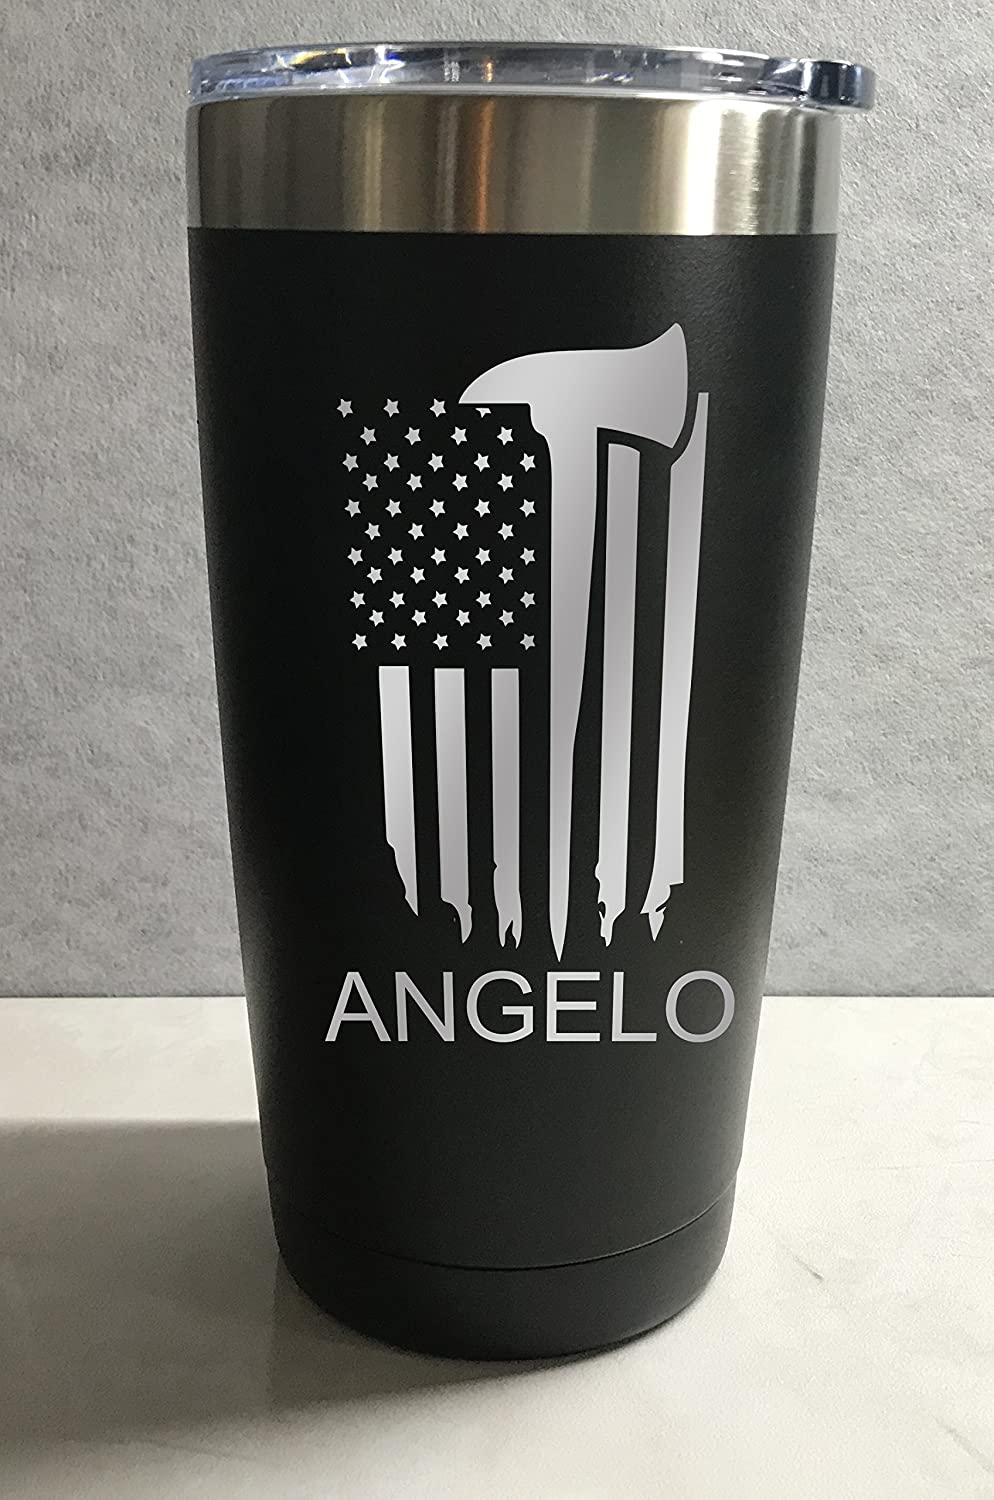 Firefighter Urban Design Personalized Engraved Insulated Stainless Steel 20 oz Tumbler